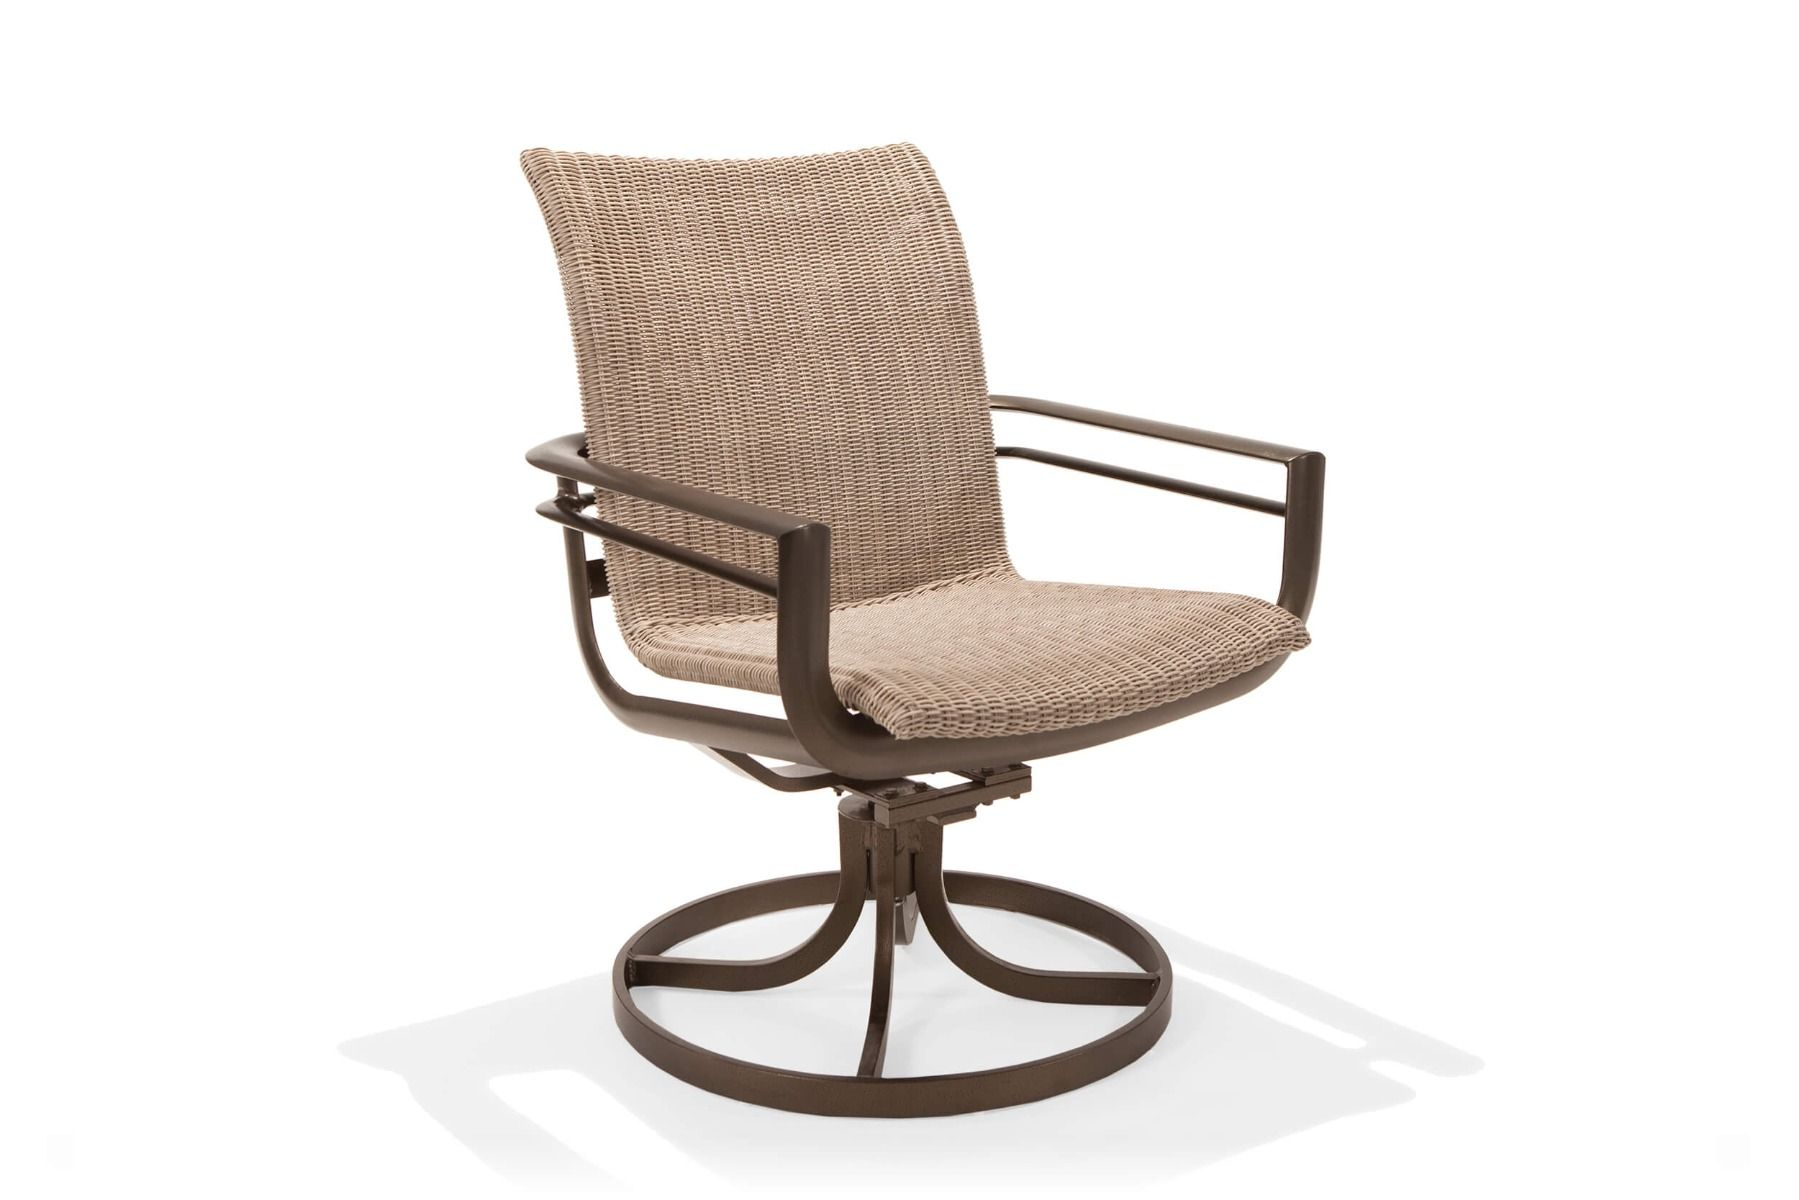 Southern Cay Woven High Back Swivel Tilt Chair With Regard To Woven High Back Swivel Chairs (Image 22 of 25)